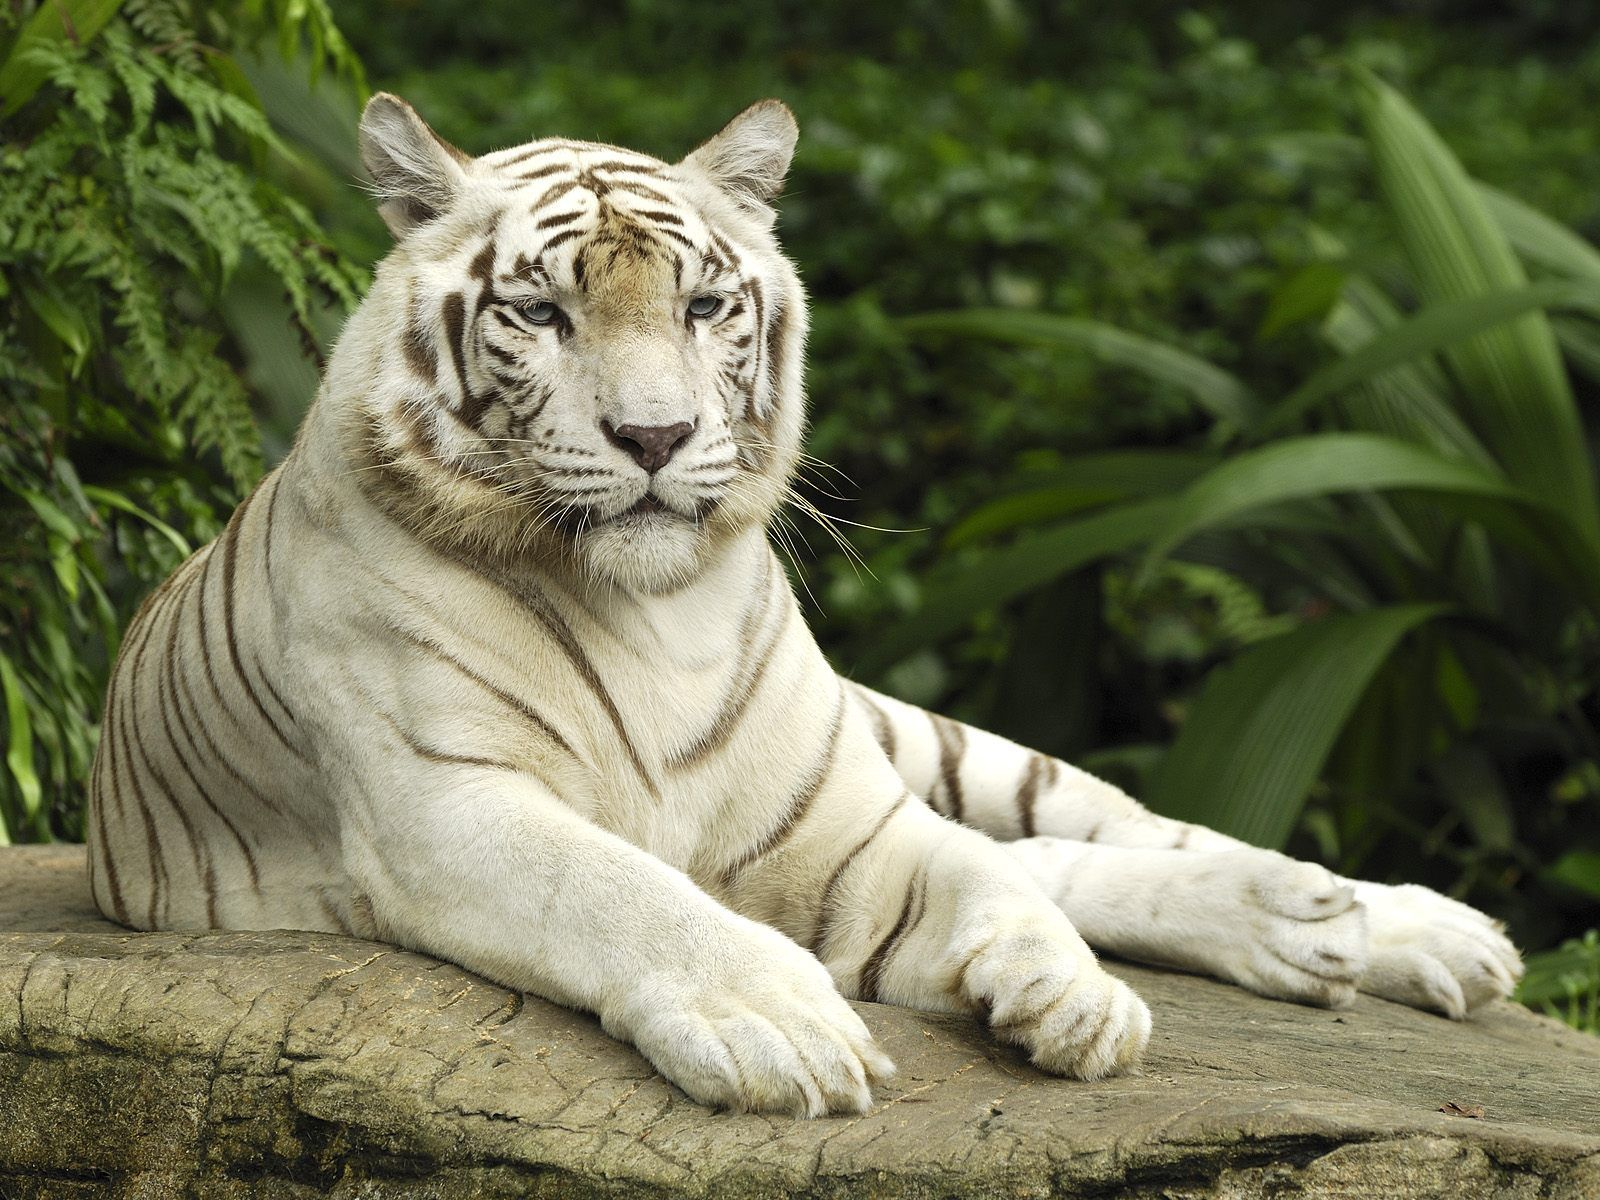 Royal bengal tiger is a great wallpaper for your computer desktop and - White Tiger Desktop White Bengal Tiger More From My Siteroyal Bengal Tiger Picturebengal Tigers Picturespictures Of Royal Bengal Tigerpicture Of Bengal